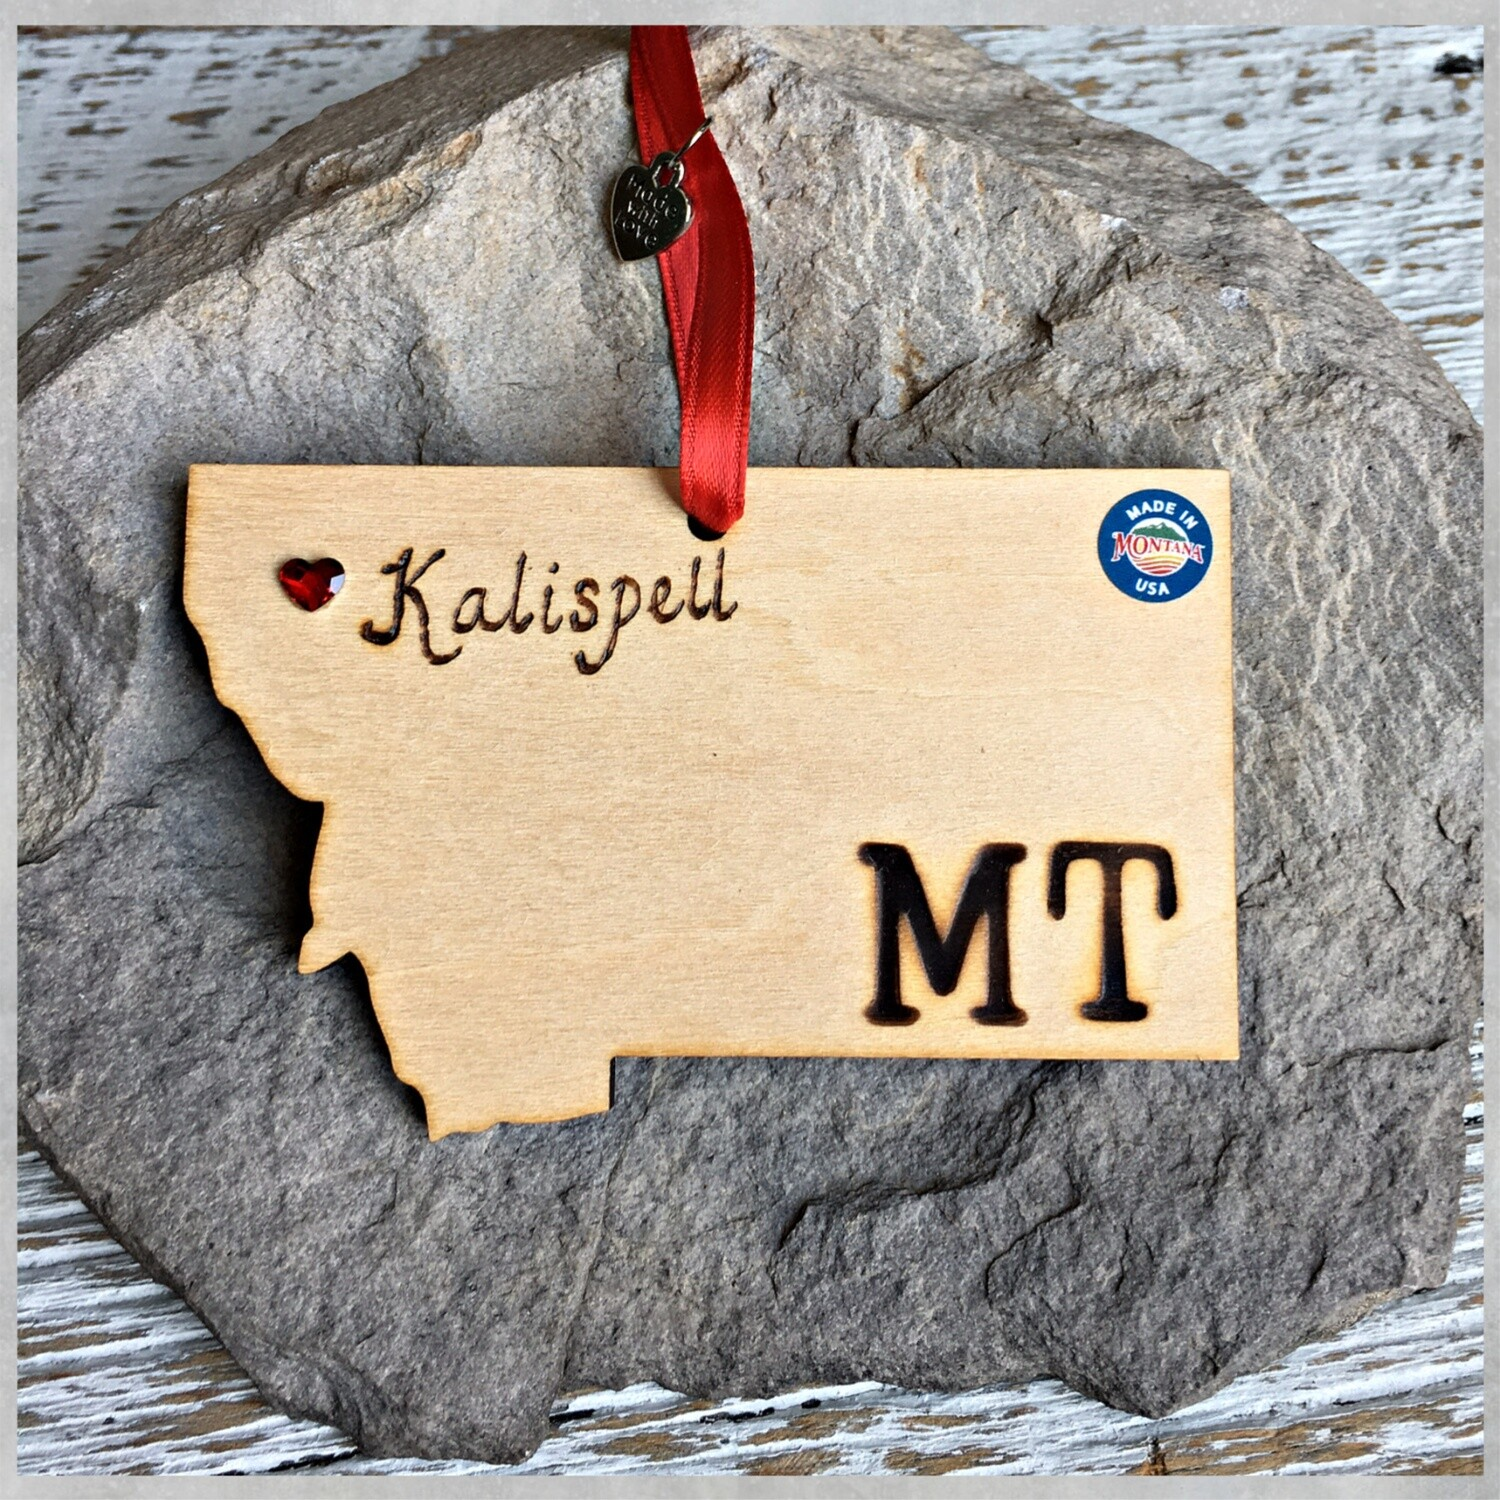 40-20 Kalispell MT Ornament